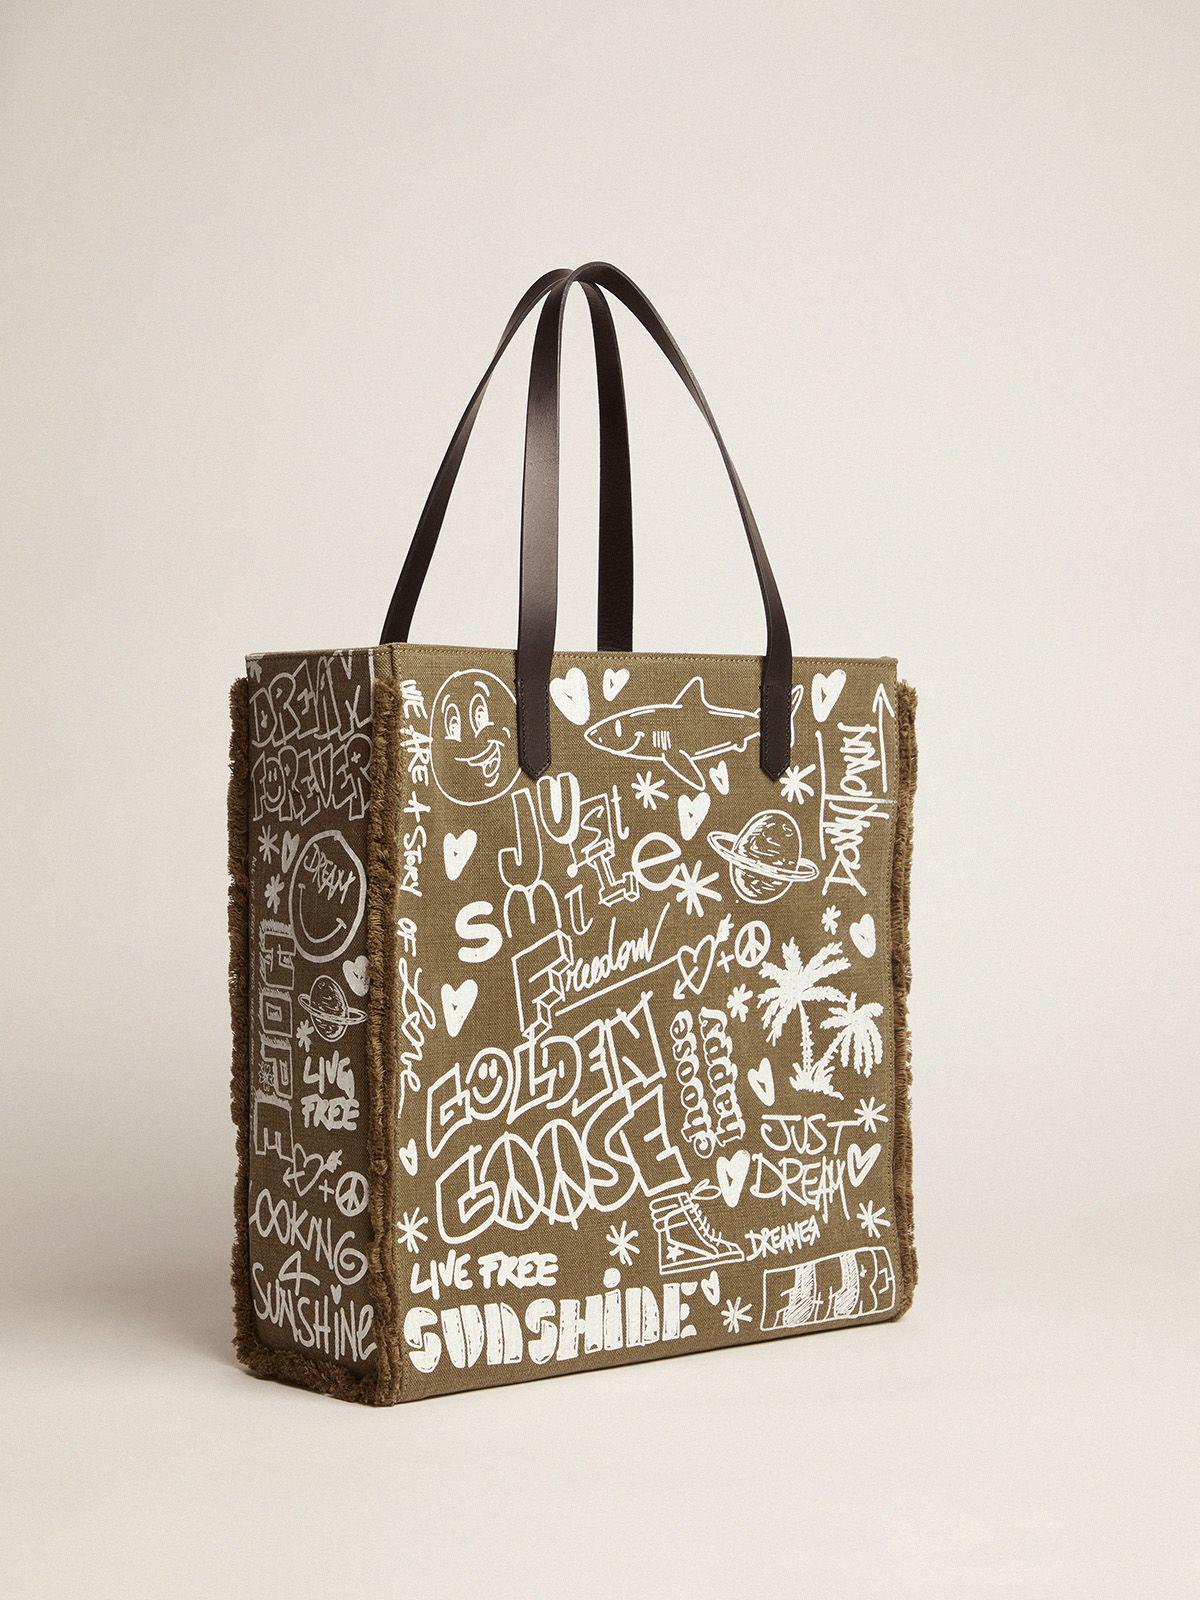 North-South California Bag in military green canvas with graffiti 3